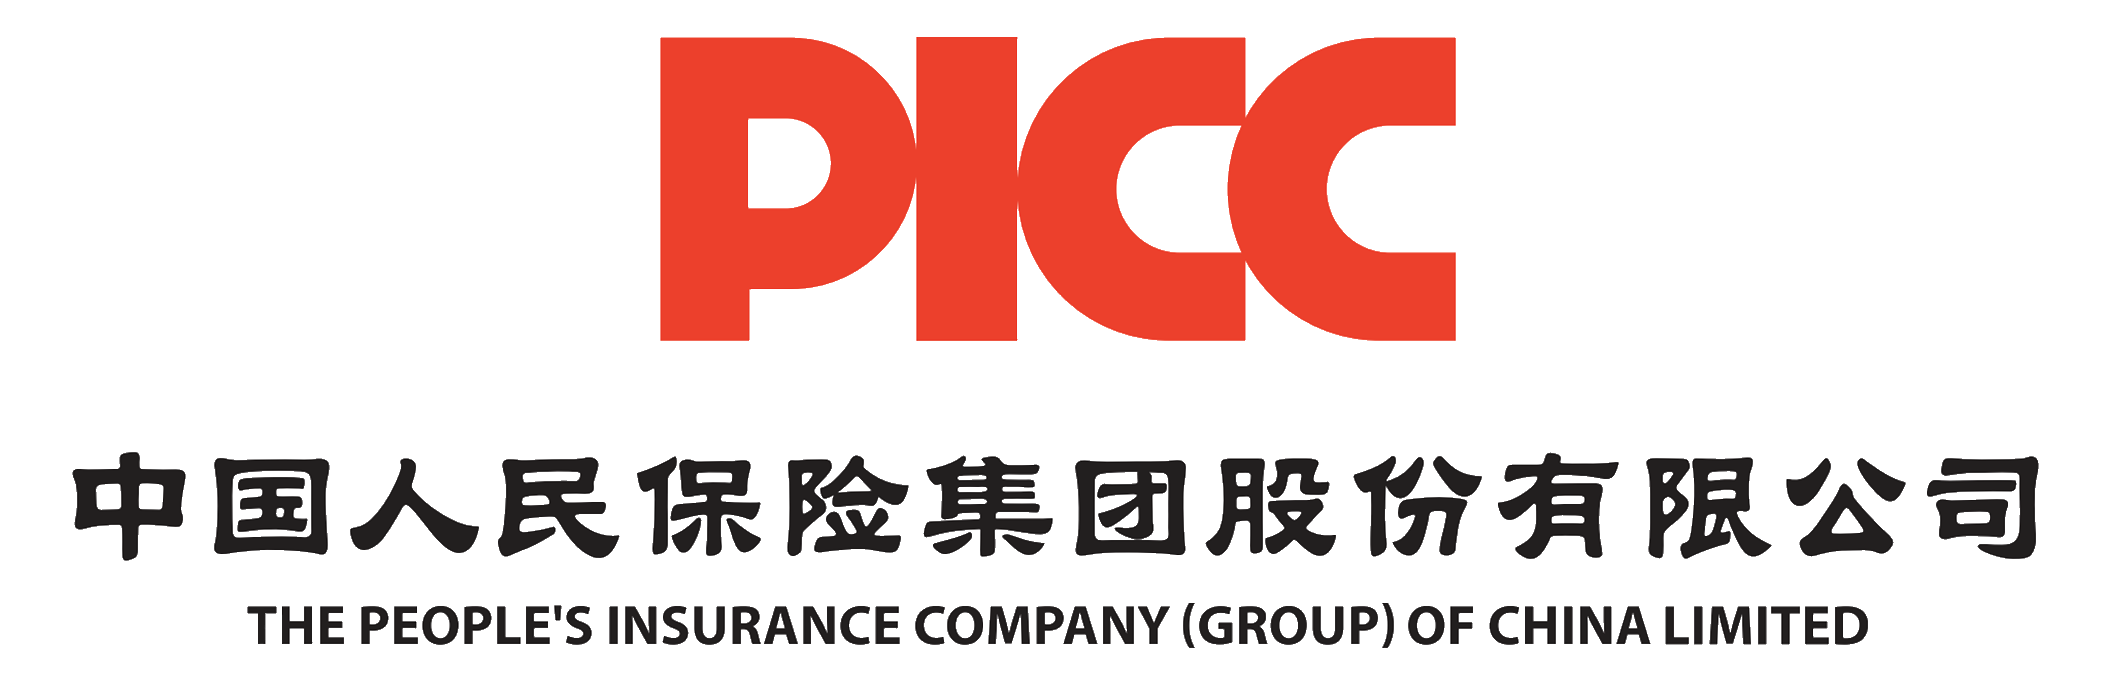 The People's Insurance Company (group) Of China Limited 601319 Icon Logo